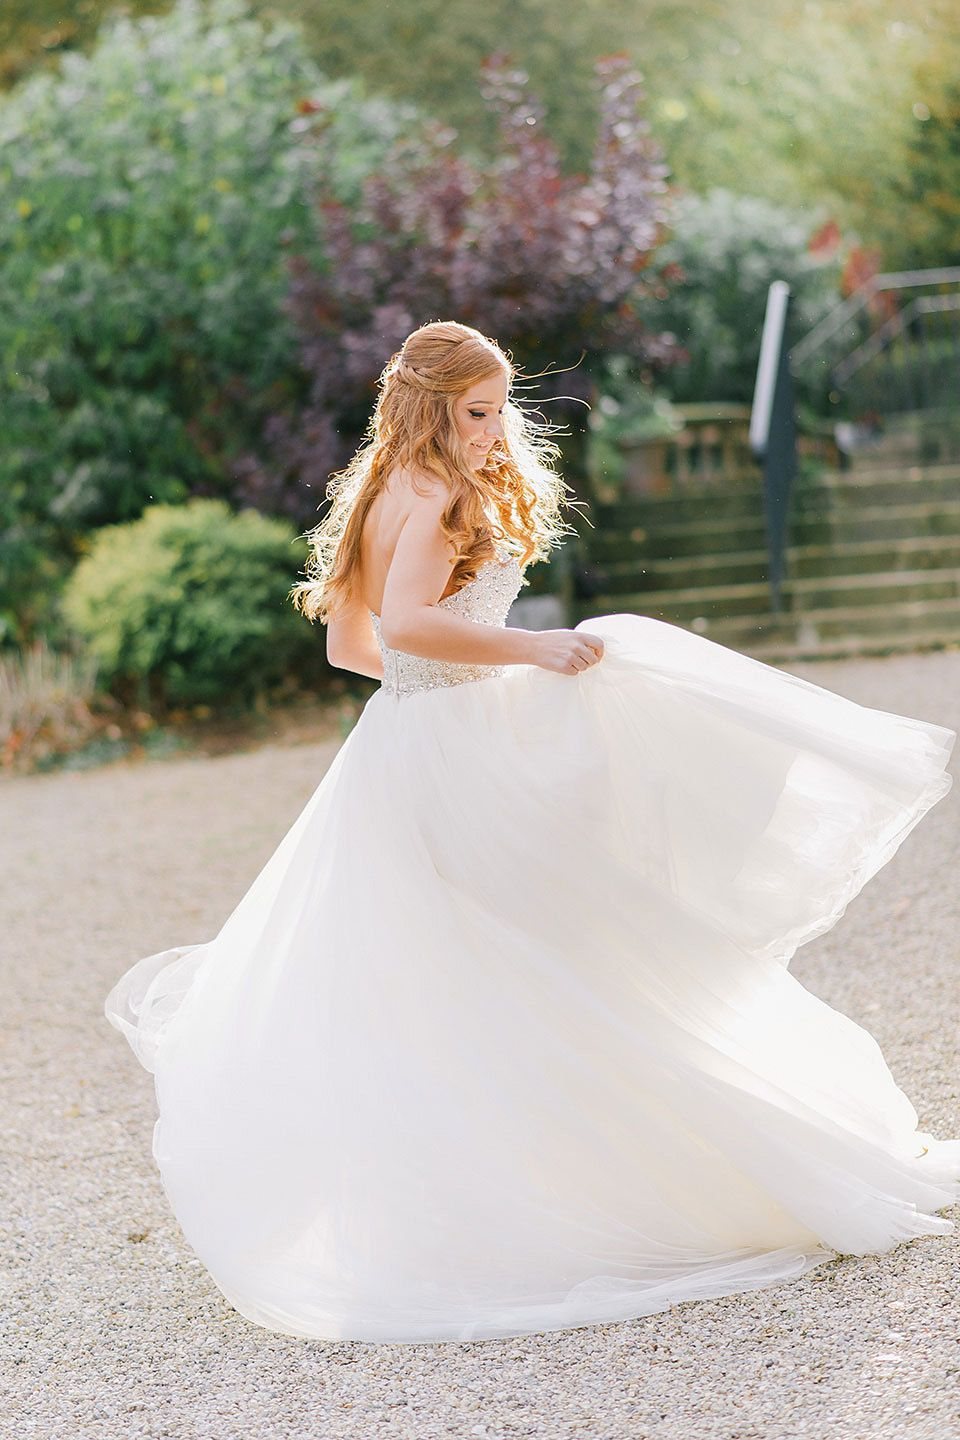 Dresses for a country wedding  Blue Shoes and a Maggie Sottero Gown for a Rustic Inspired Country